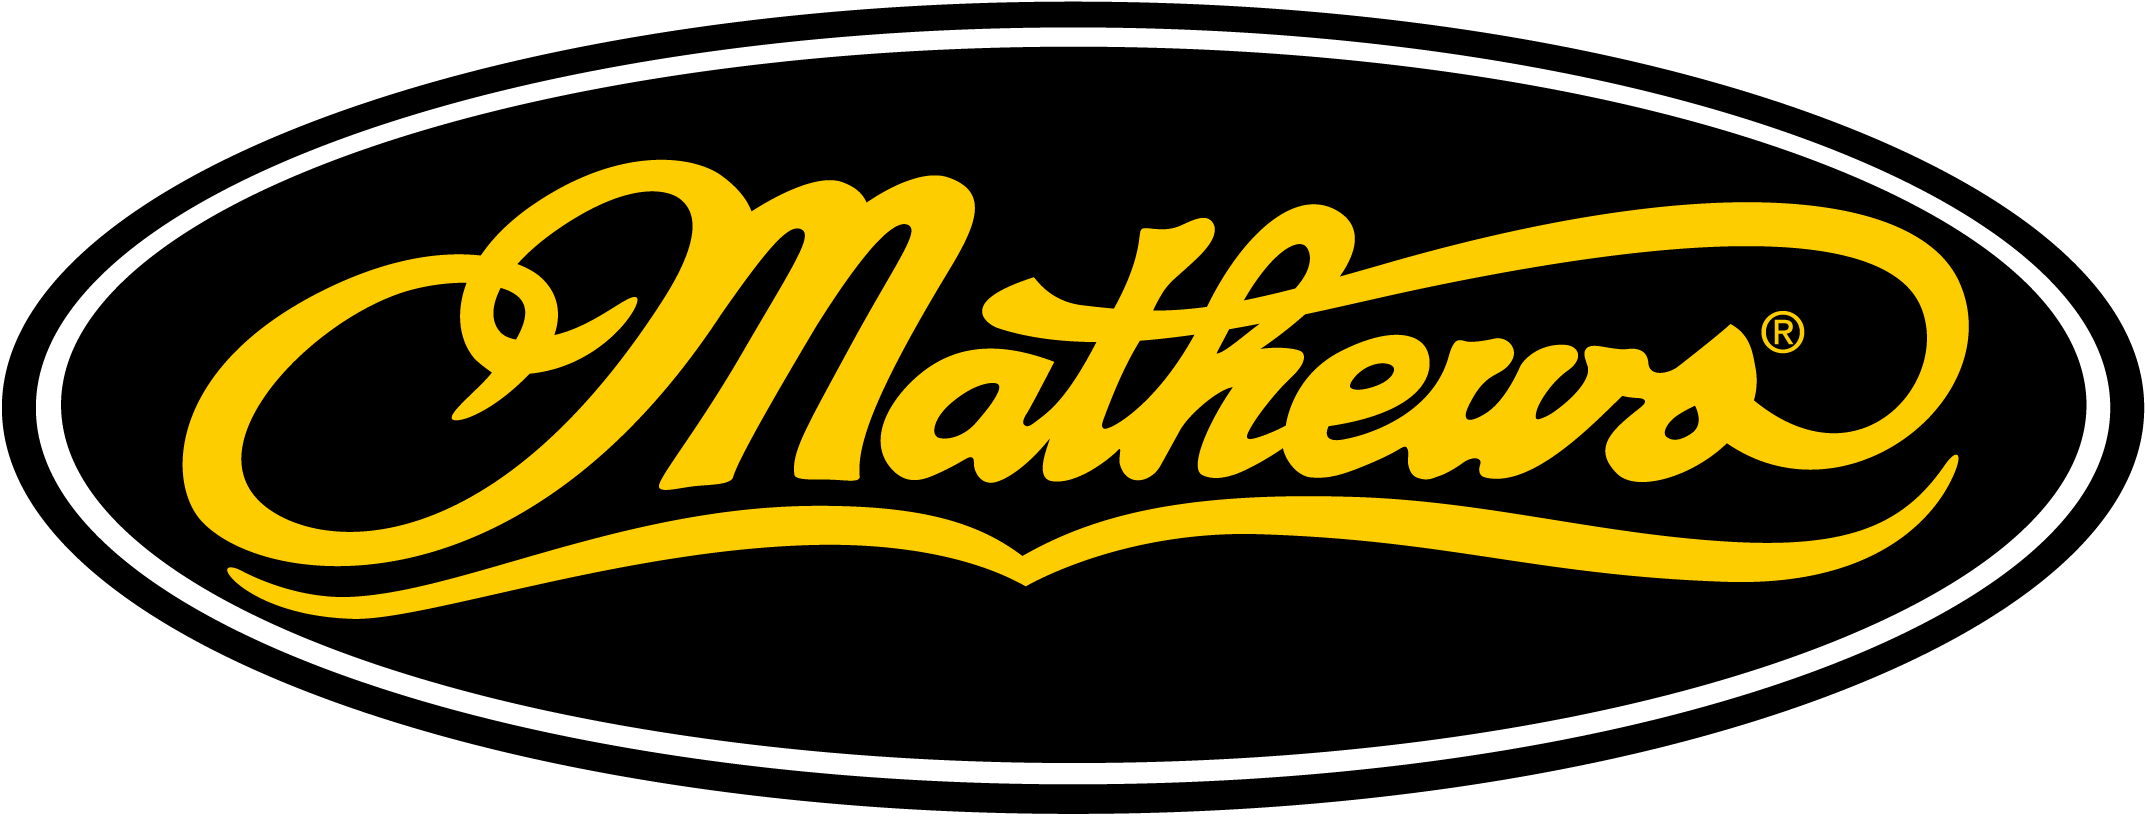 Mathews - Official Archery Partner of HFT - Hunting Film Tour